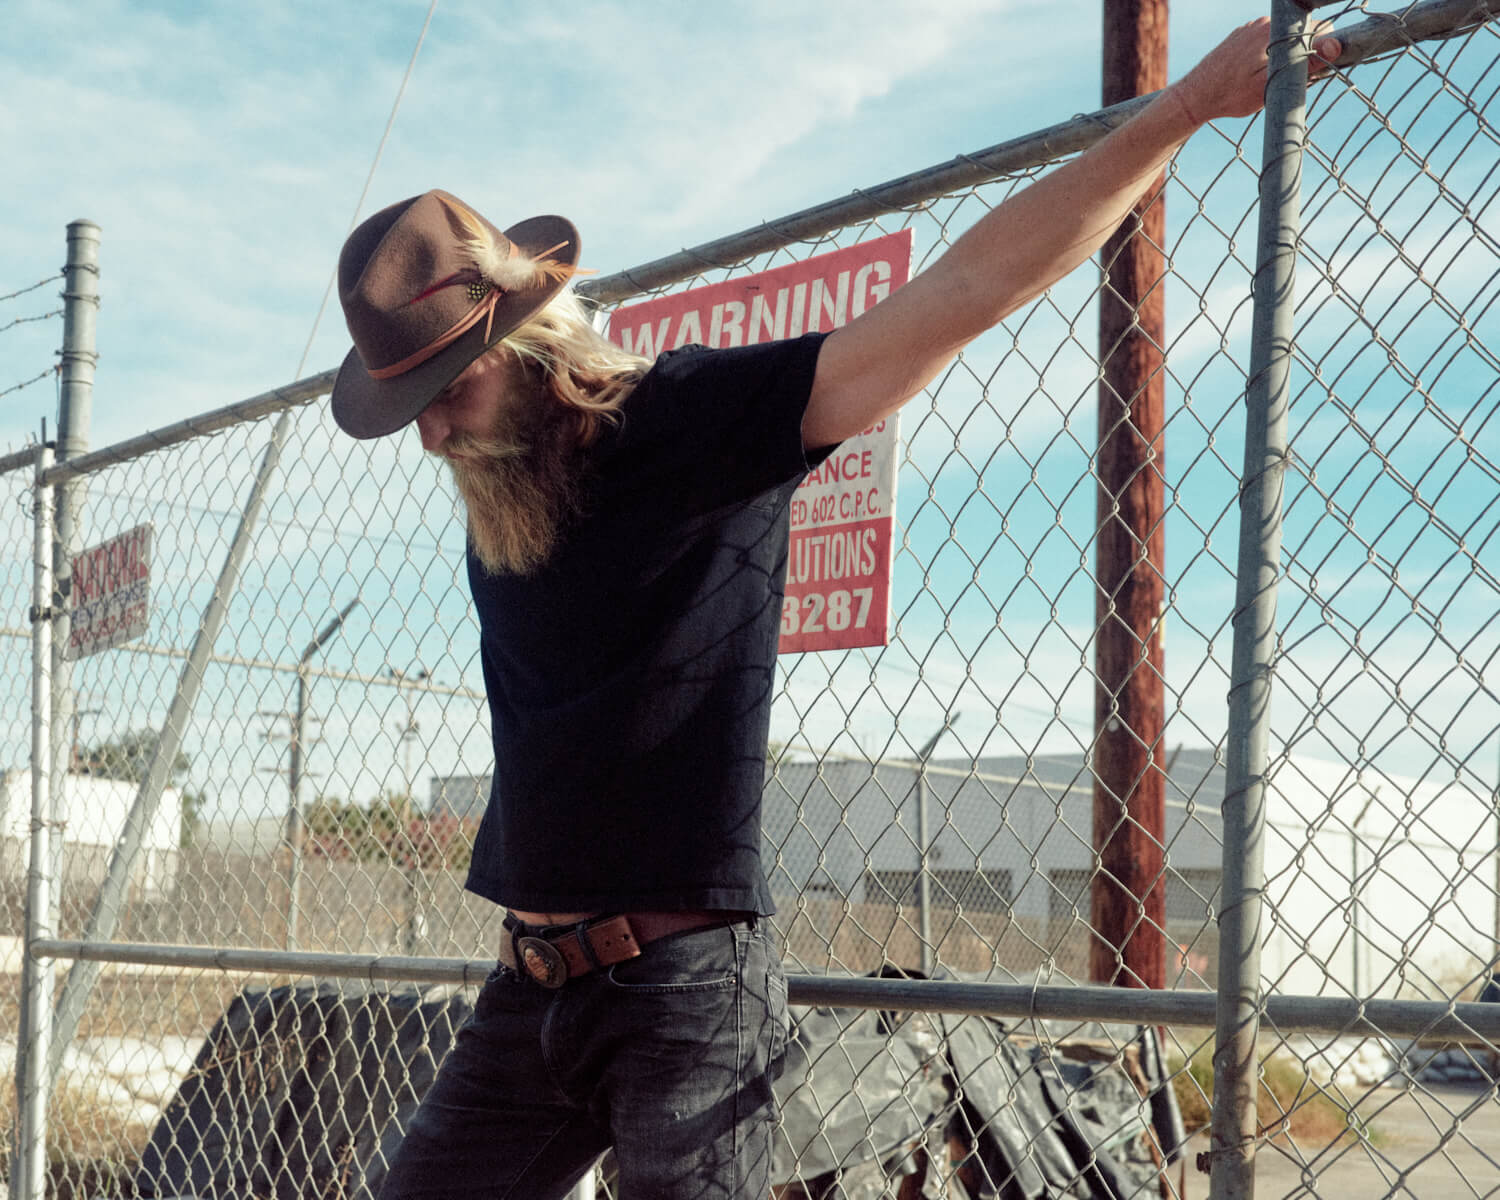 hipster hangs off wired gate by lifestyle photographer Tim Cole